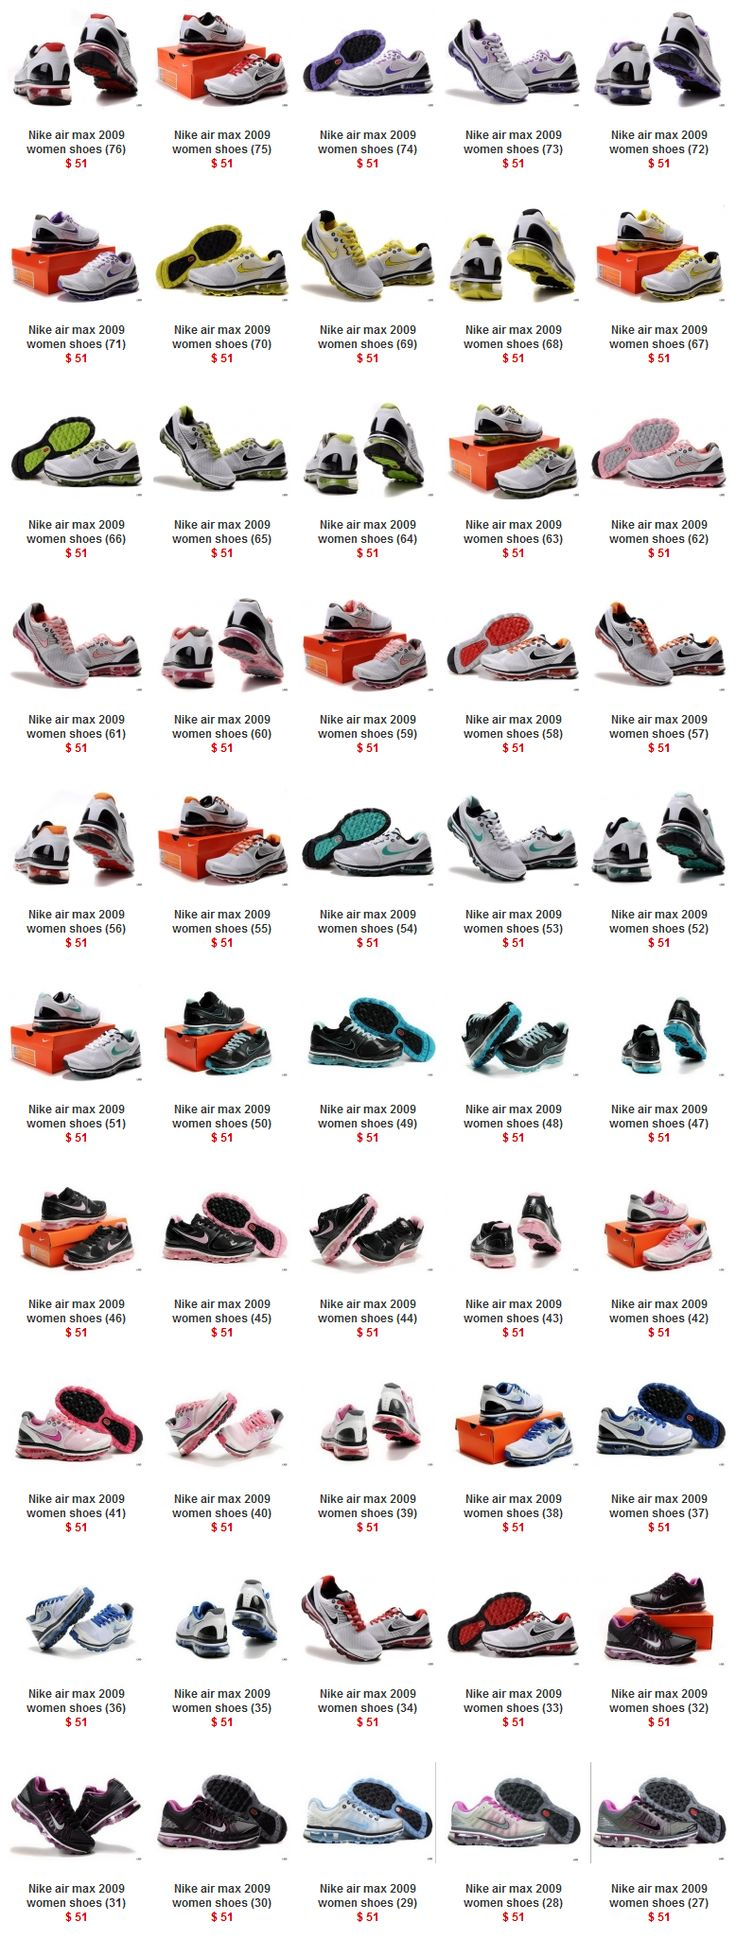 10 best images about nike air max 2009 shoes on Pinterest | Woman ...